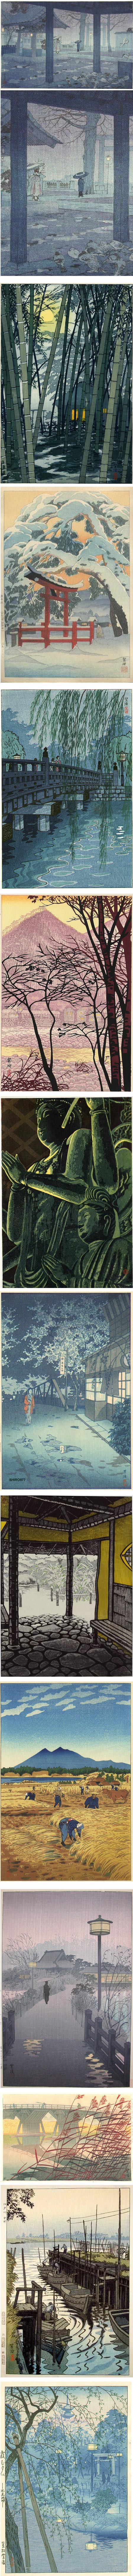 Shiro Kasamatsu, Shin Hanga Japanese woodblock prints